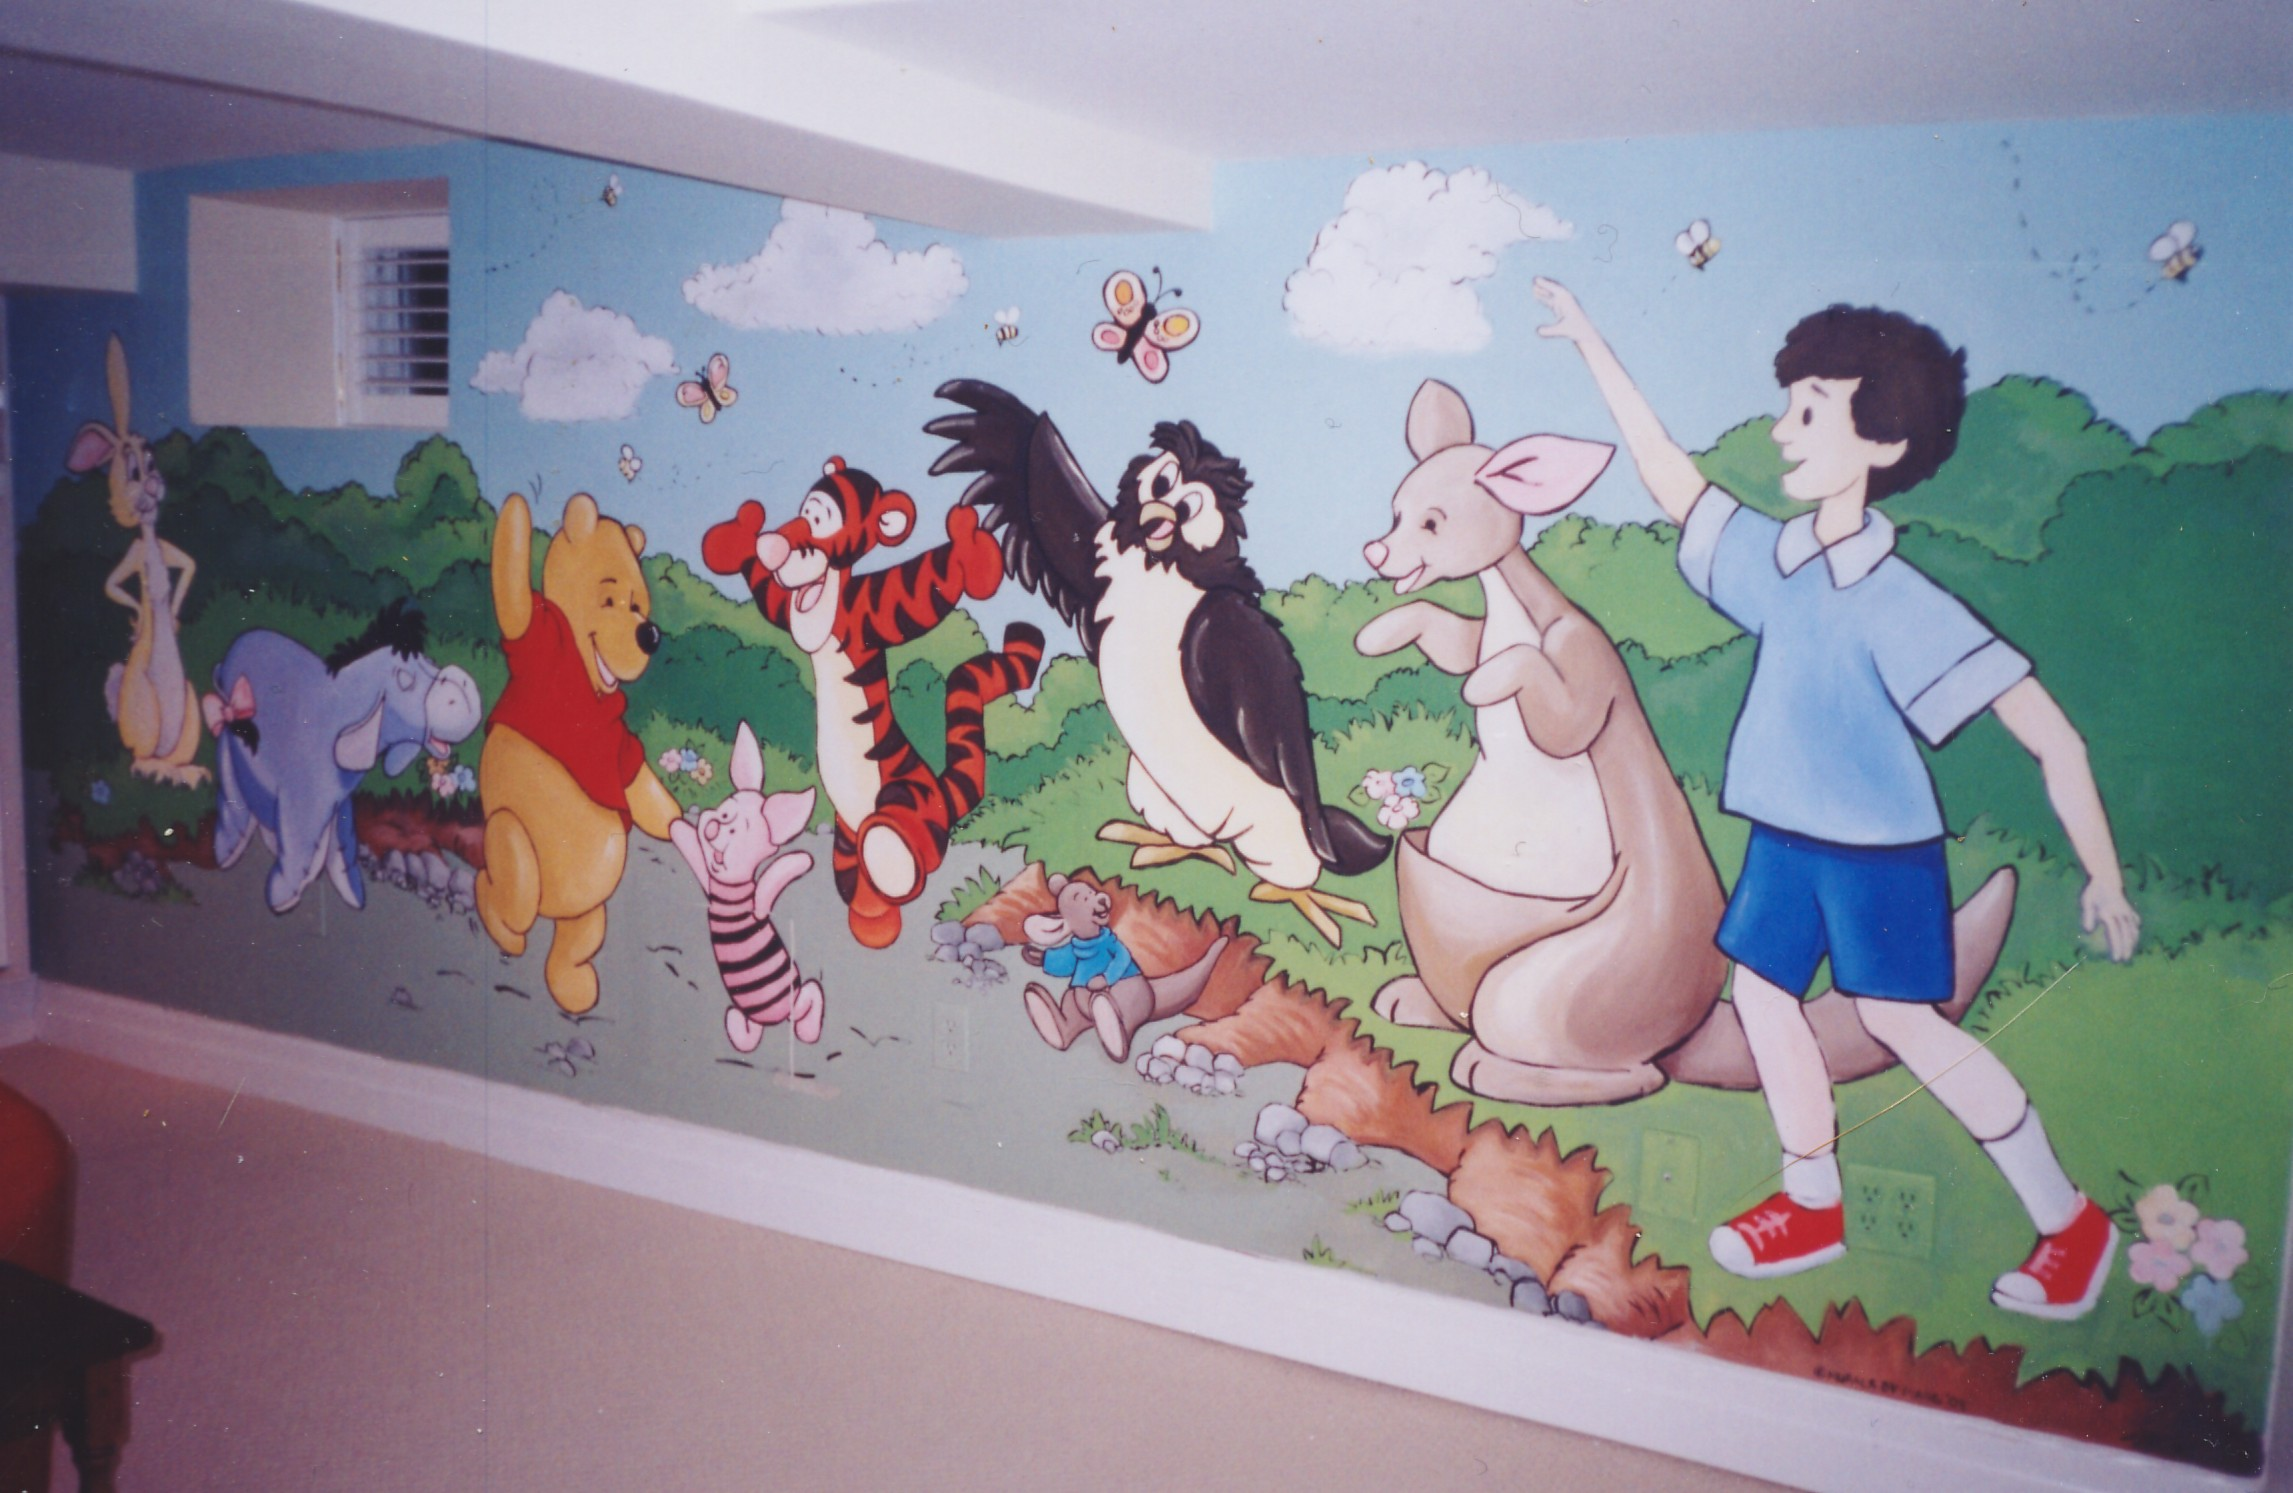 Murals By Marg Winnie and Friends Playroom Mural 1.JPG